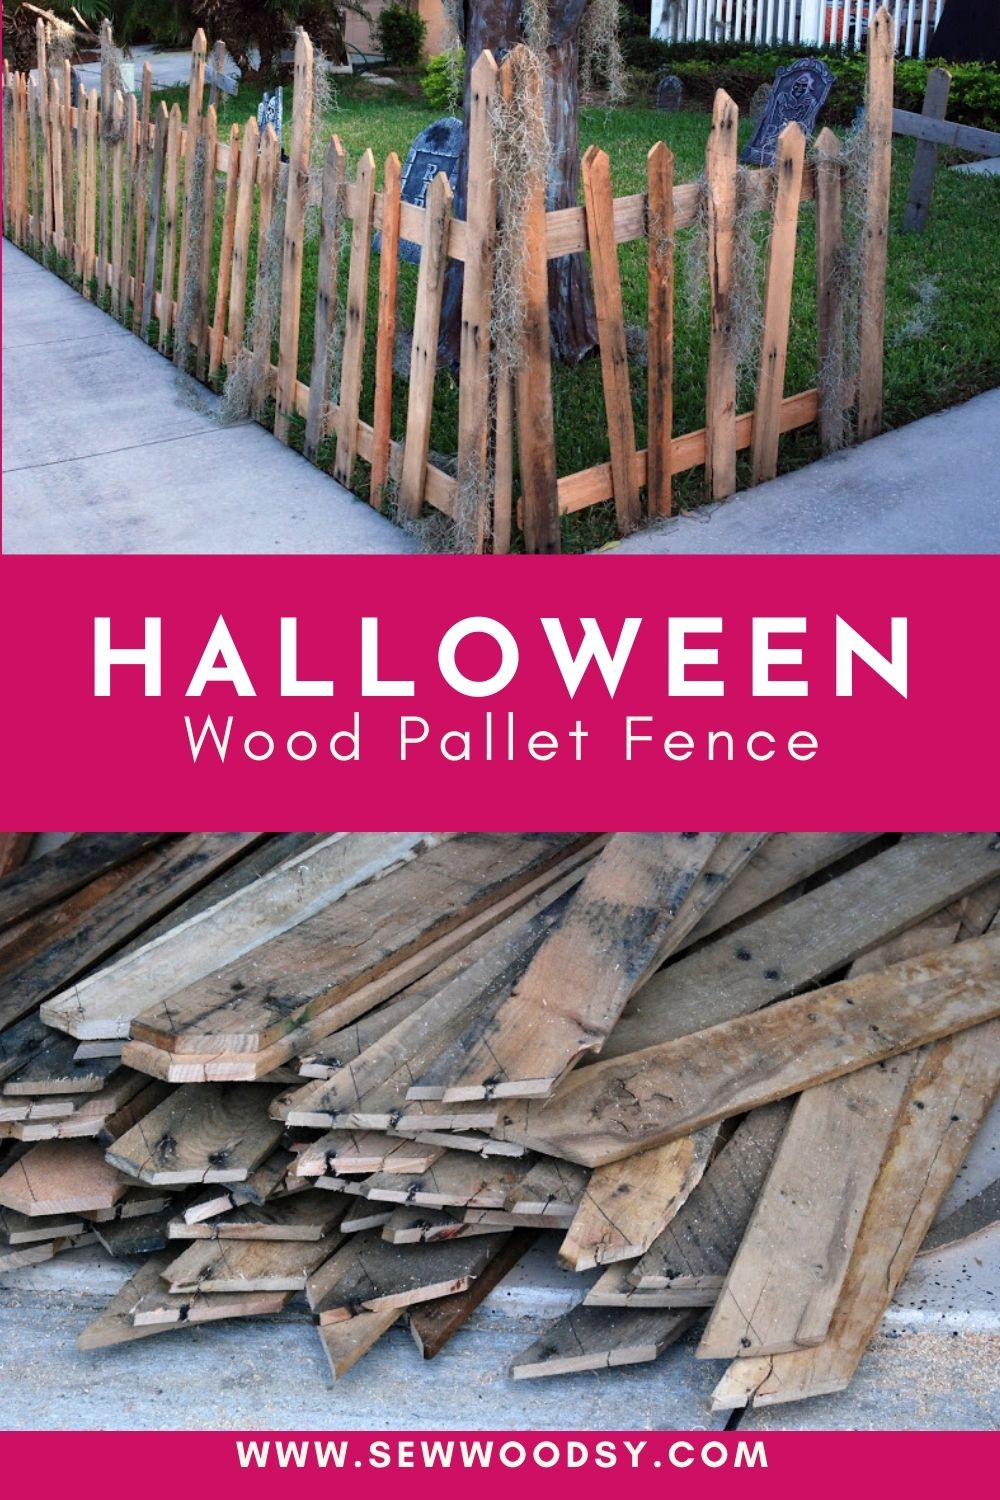 Two photos: Top of wood pallet fence, bottom of pallet spikes. with text on image for Pinterest.